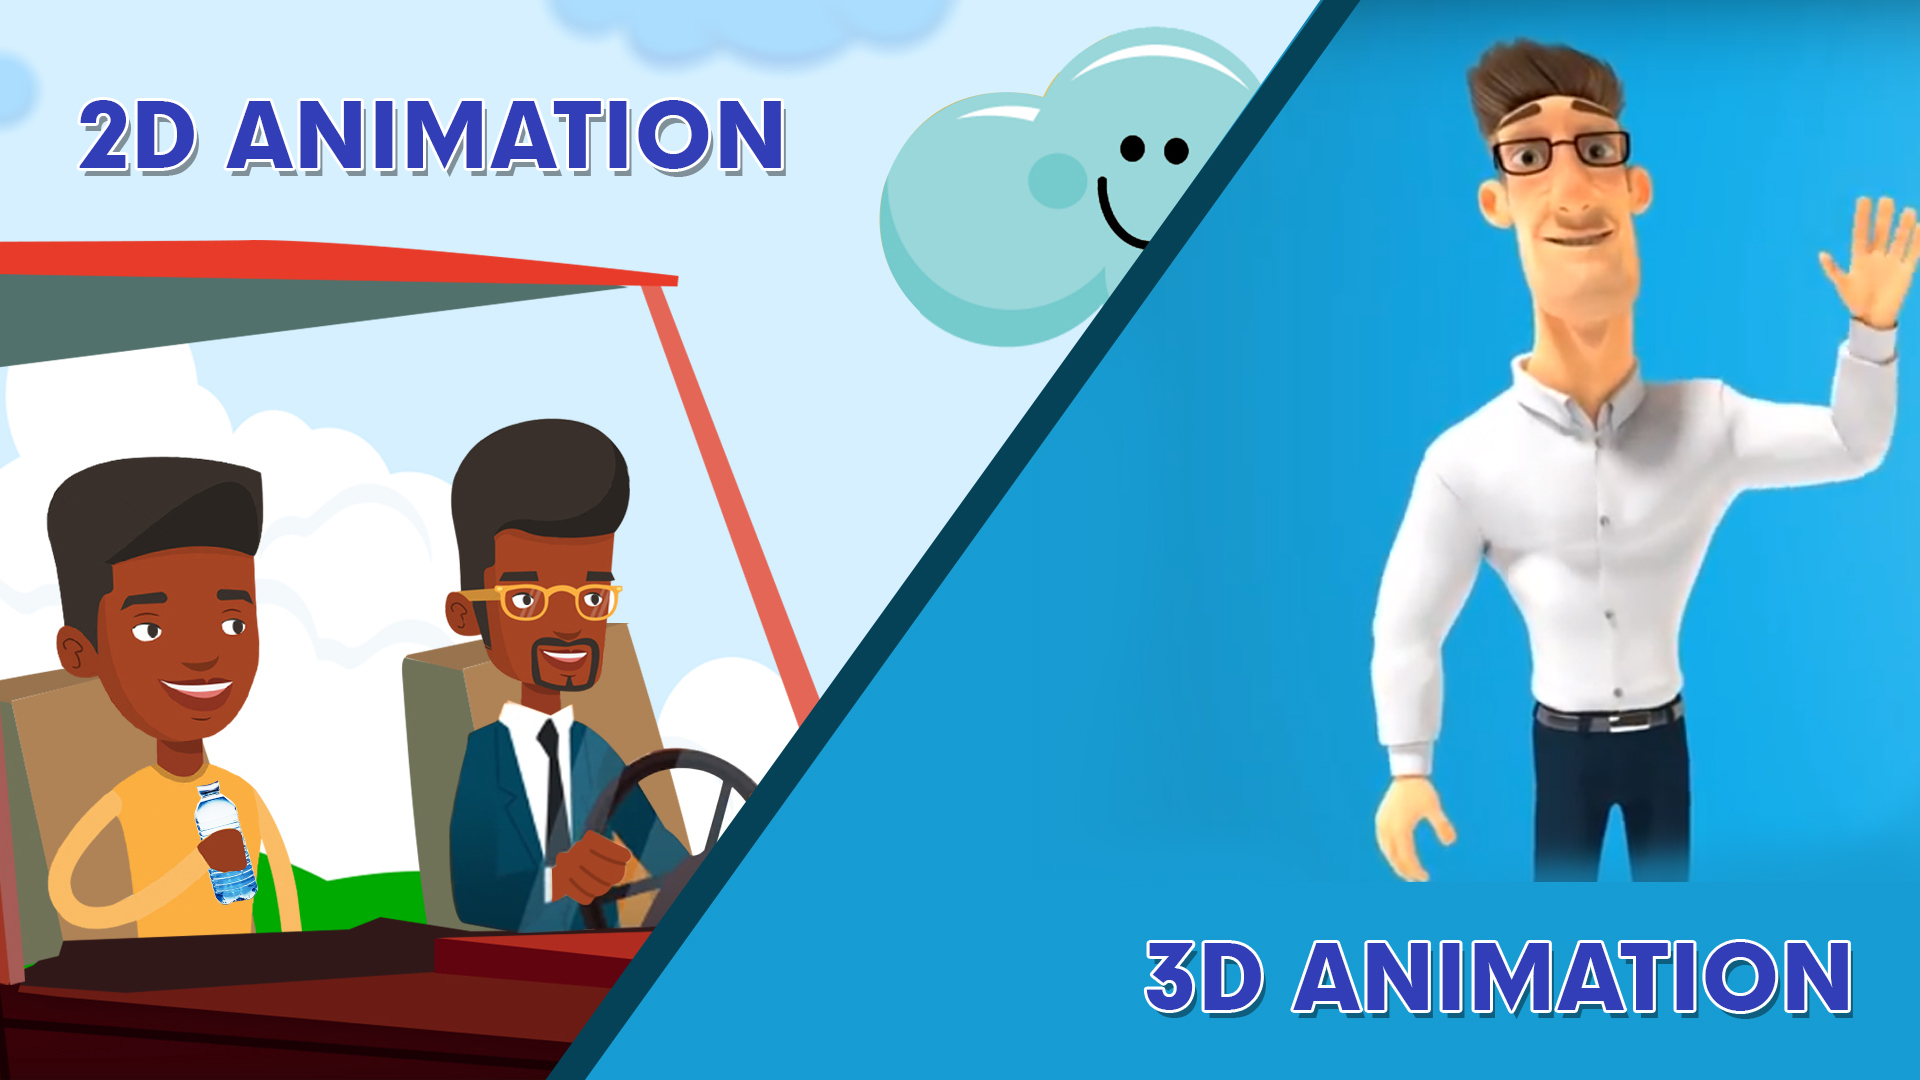 What is the meaning of 2d animation and 3d animation and which one is better?